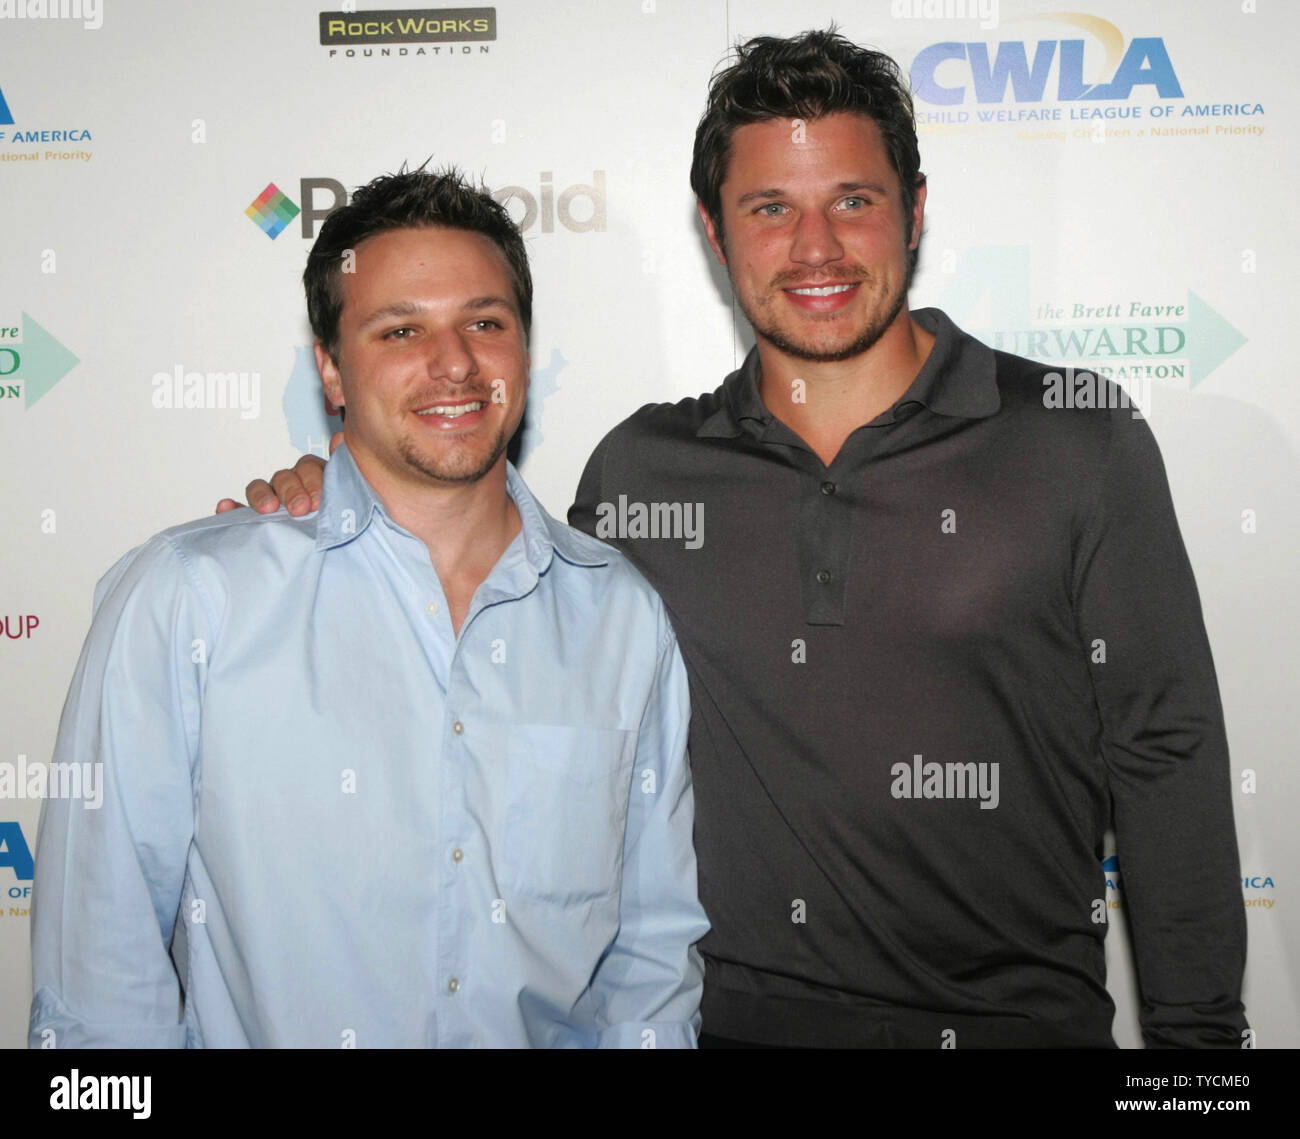 Brothers Nick and Drew Lachey of rock group 98 degrees